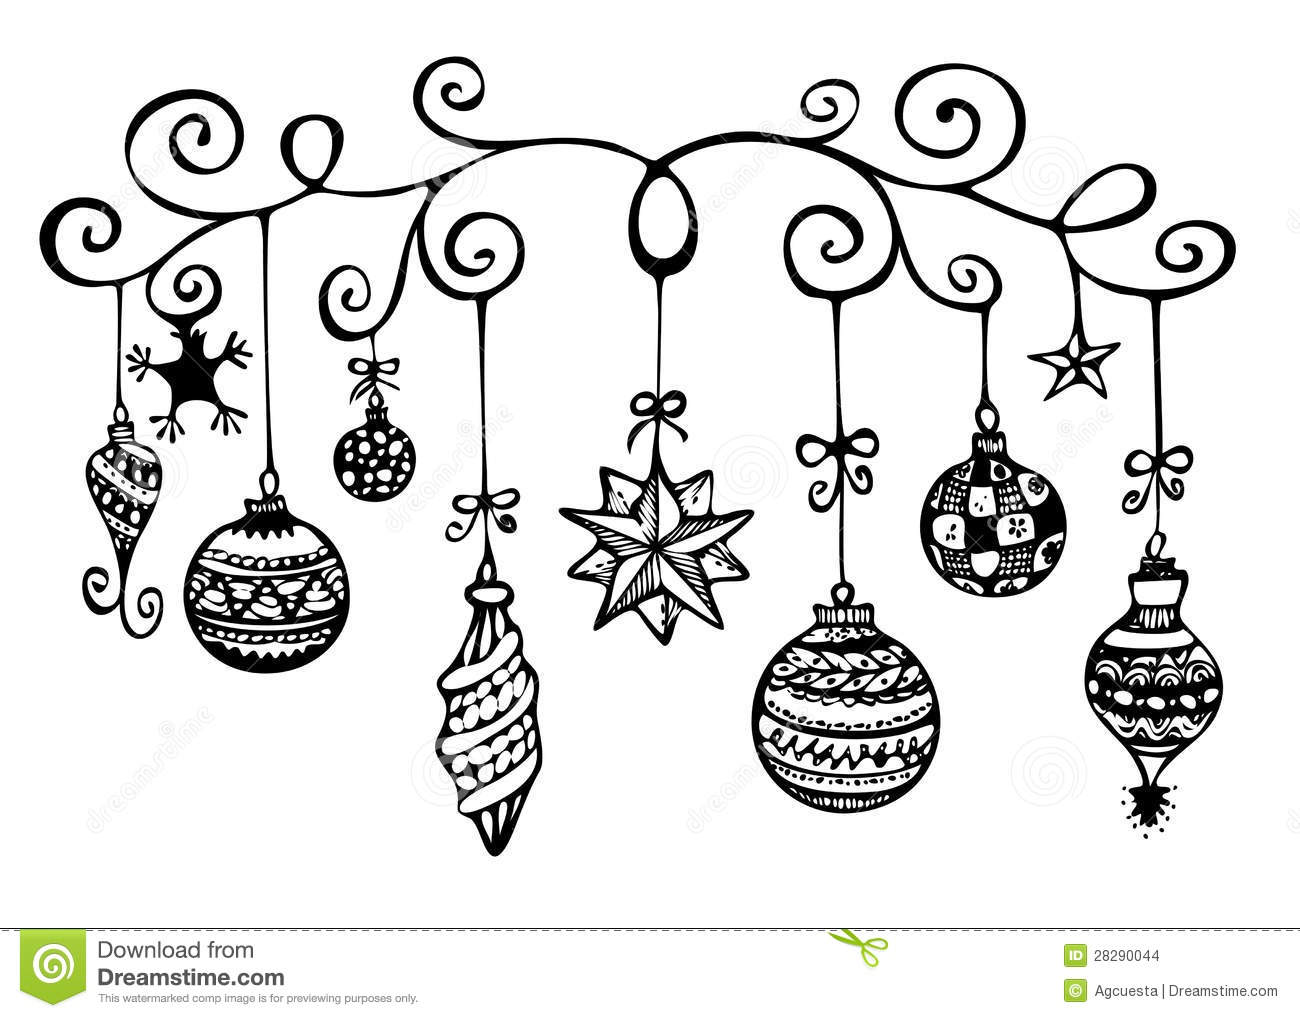 Decoration clipart black and white free download Christmas decorations clipart black and white 3 » Clipart Station free download